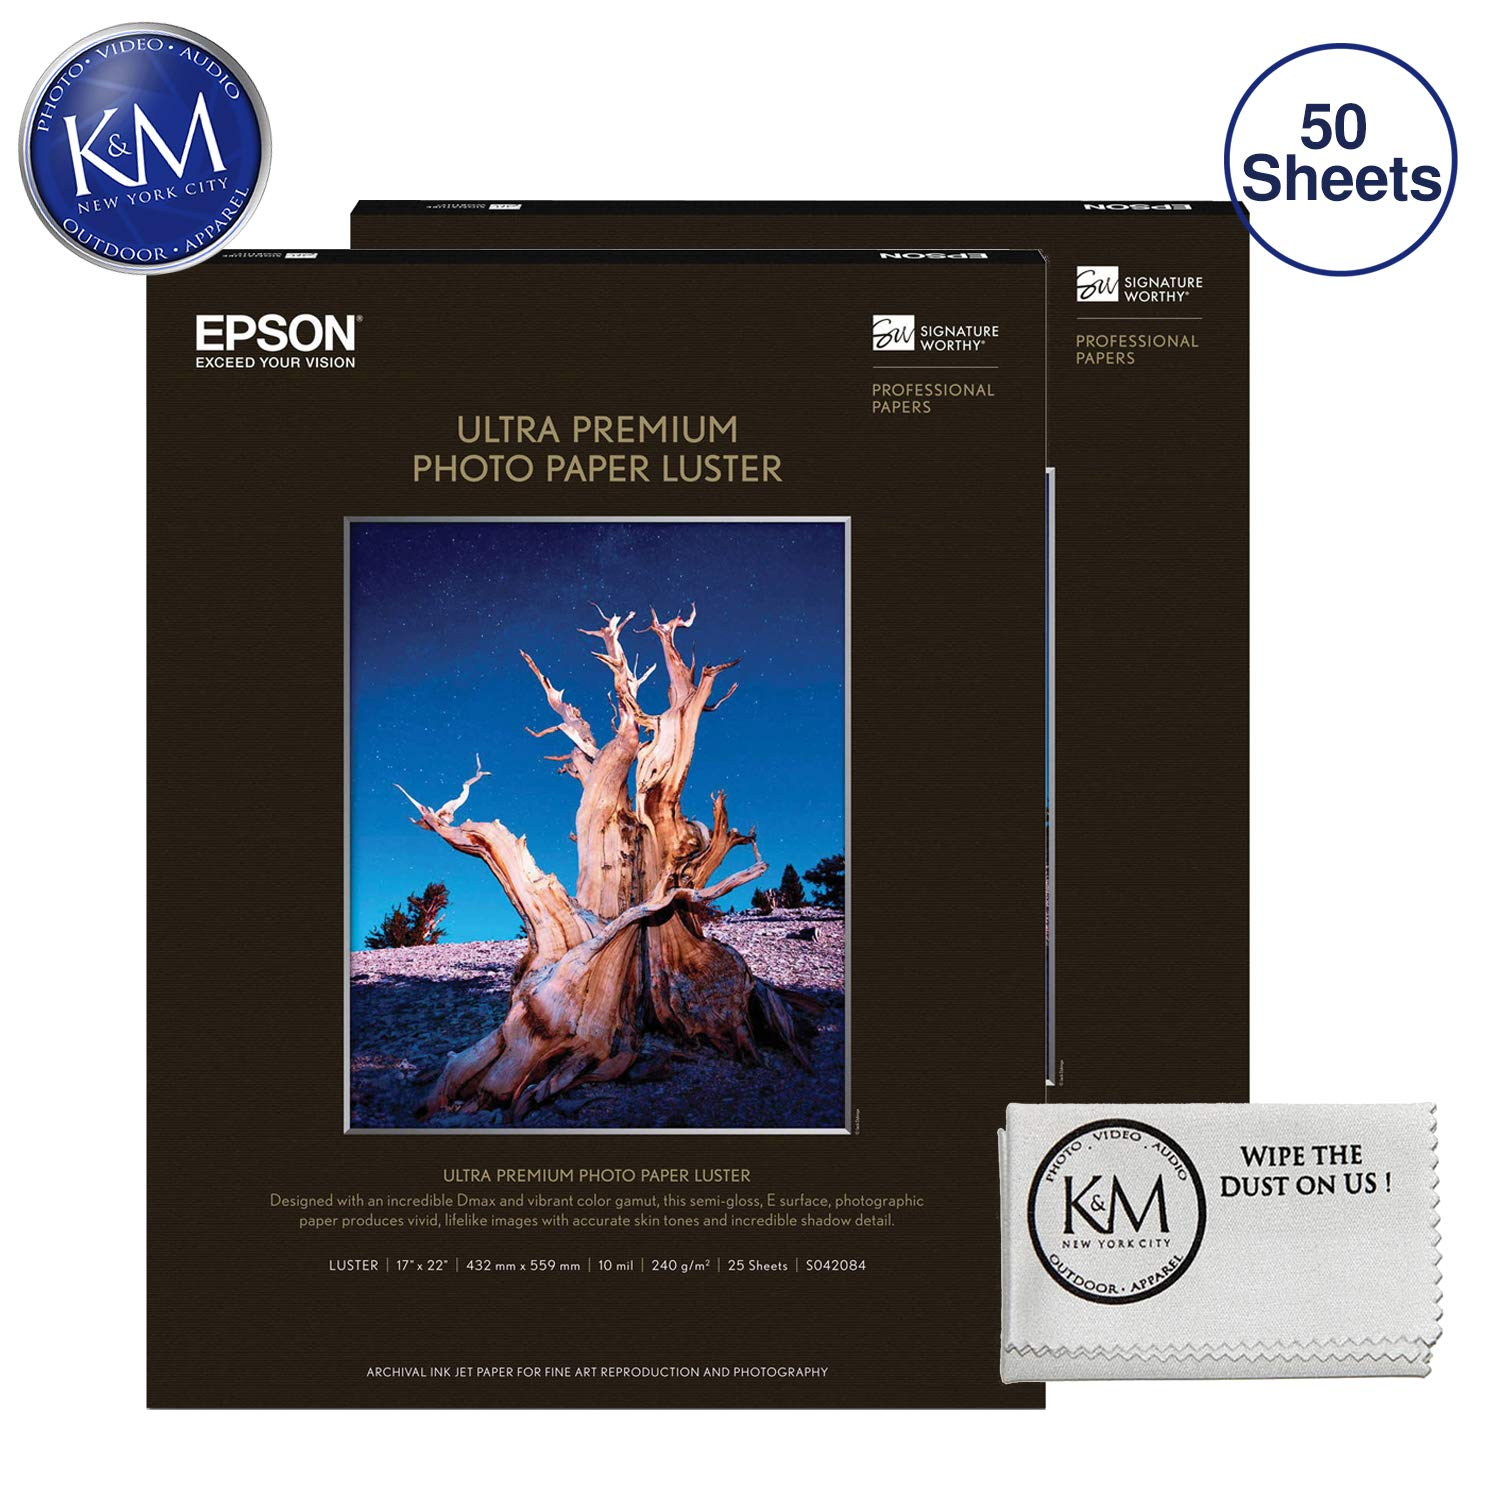 Epson Ultra Premium Photo Paper Luster 17 x 22'' 2 Pack (50 Sheets) & Cloth